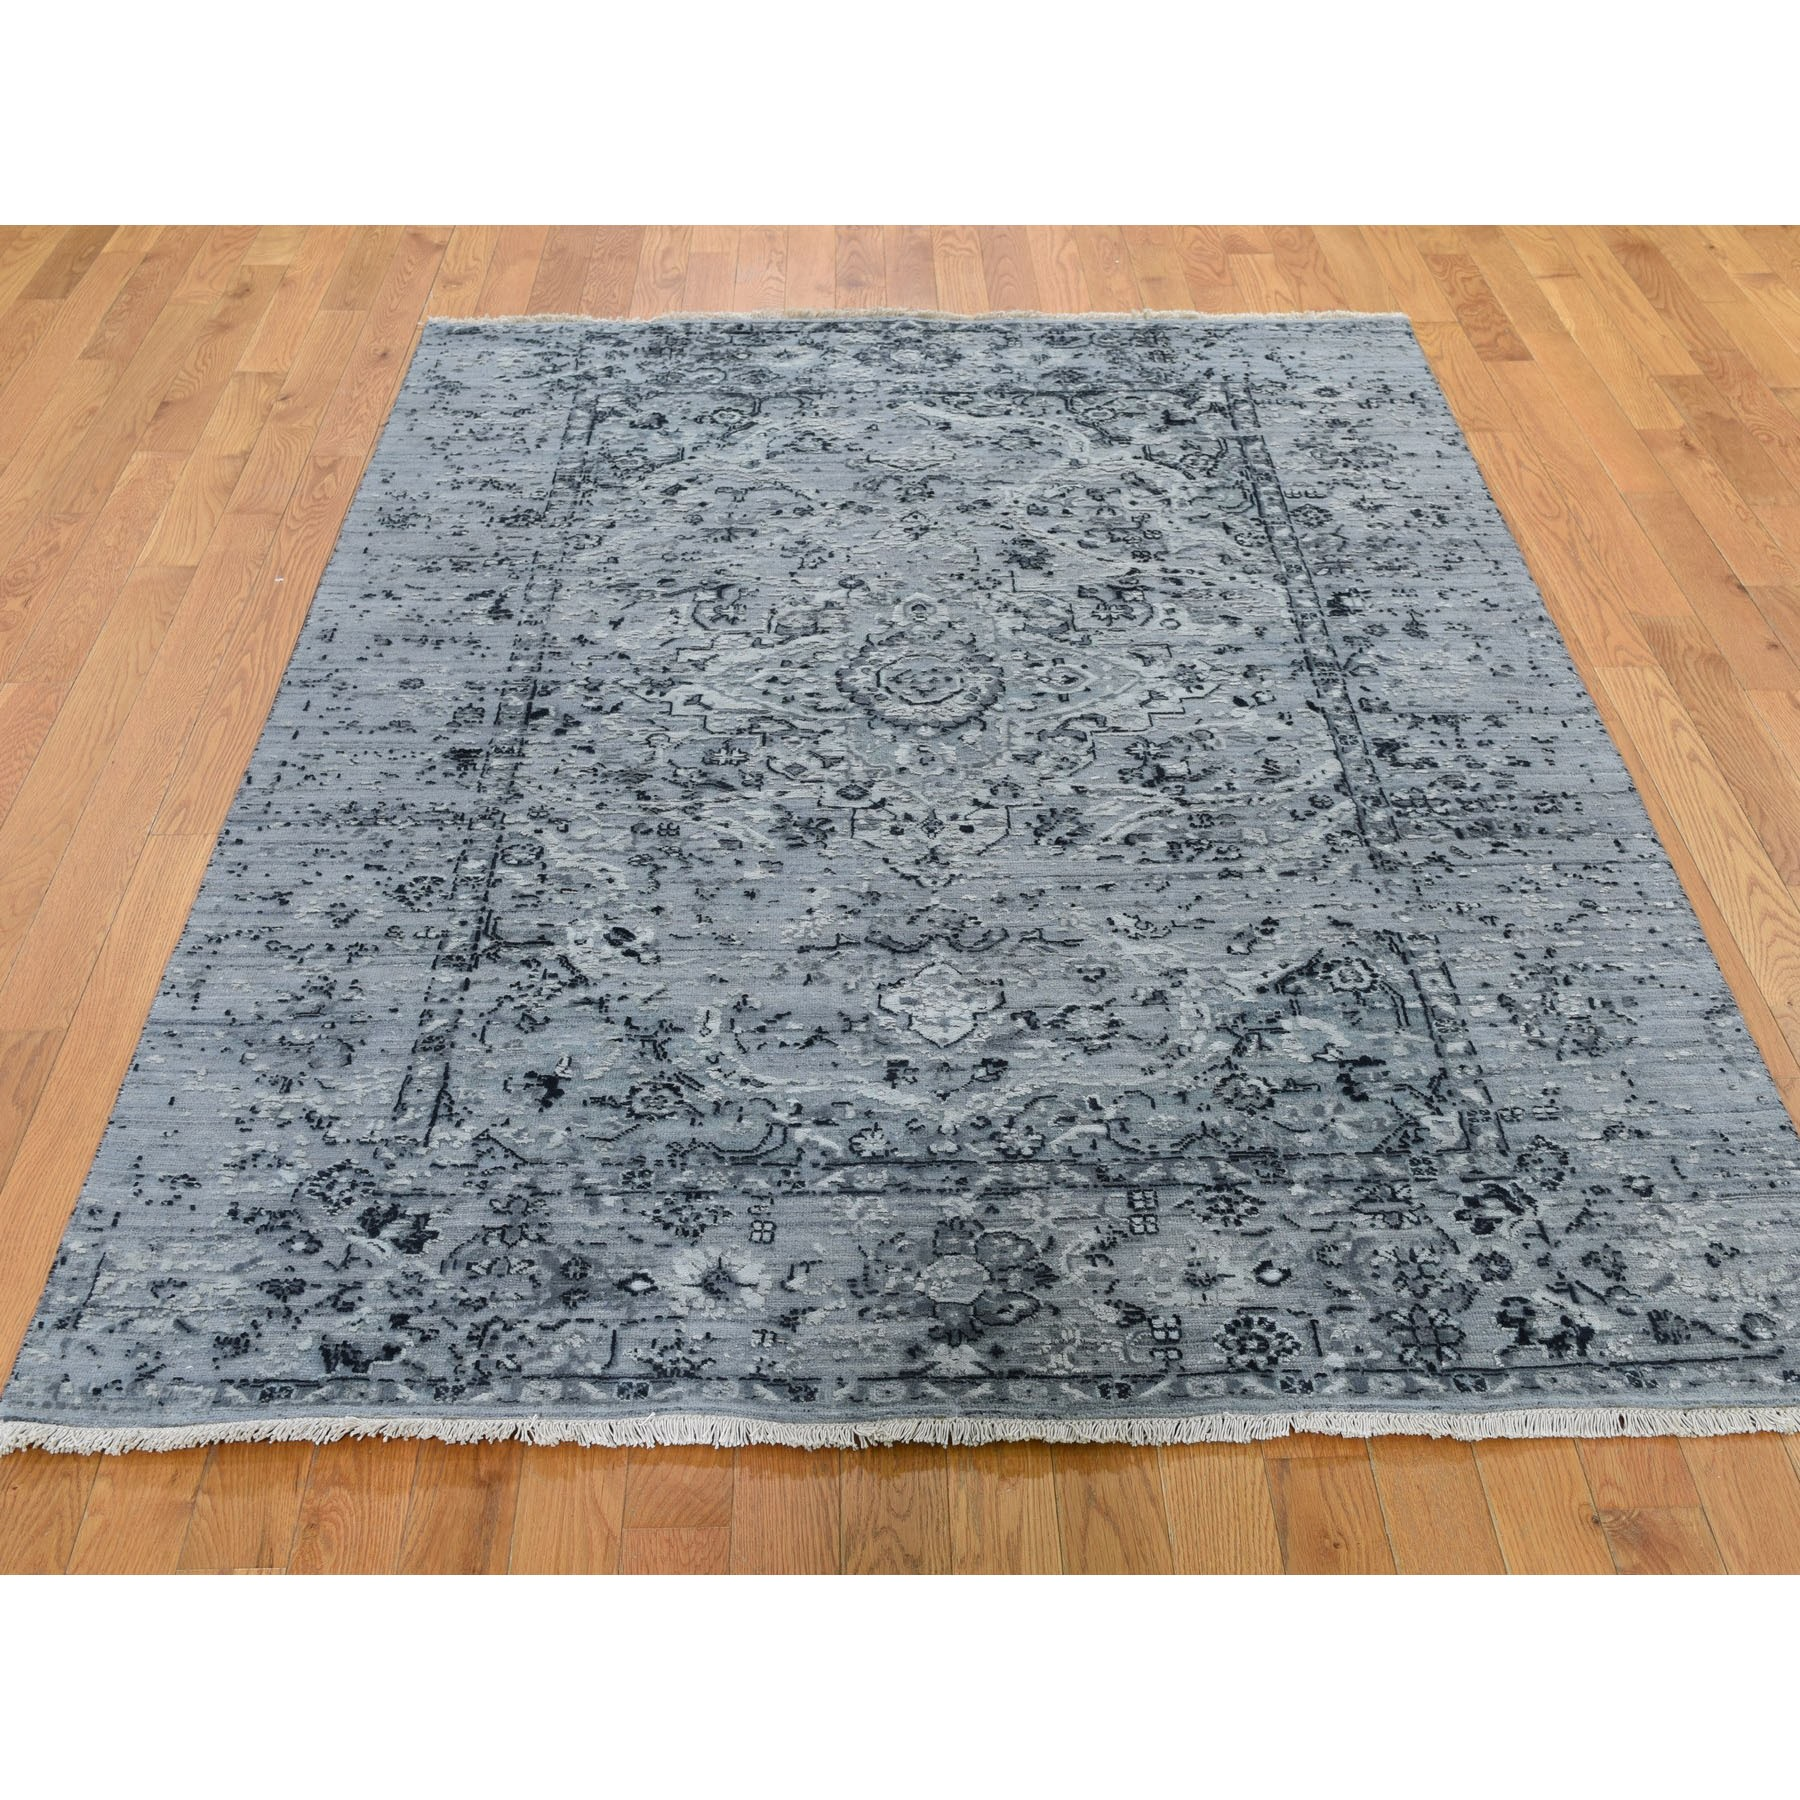 5-1 x7-2  Gray Broken Persian Erased Design Silk With Textured Wool Hand Knotted Oriental Rug